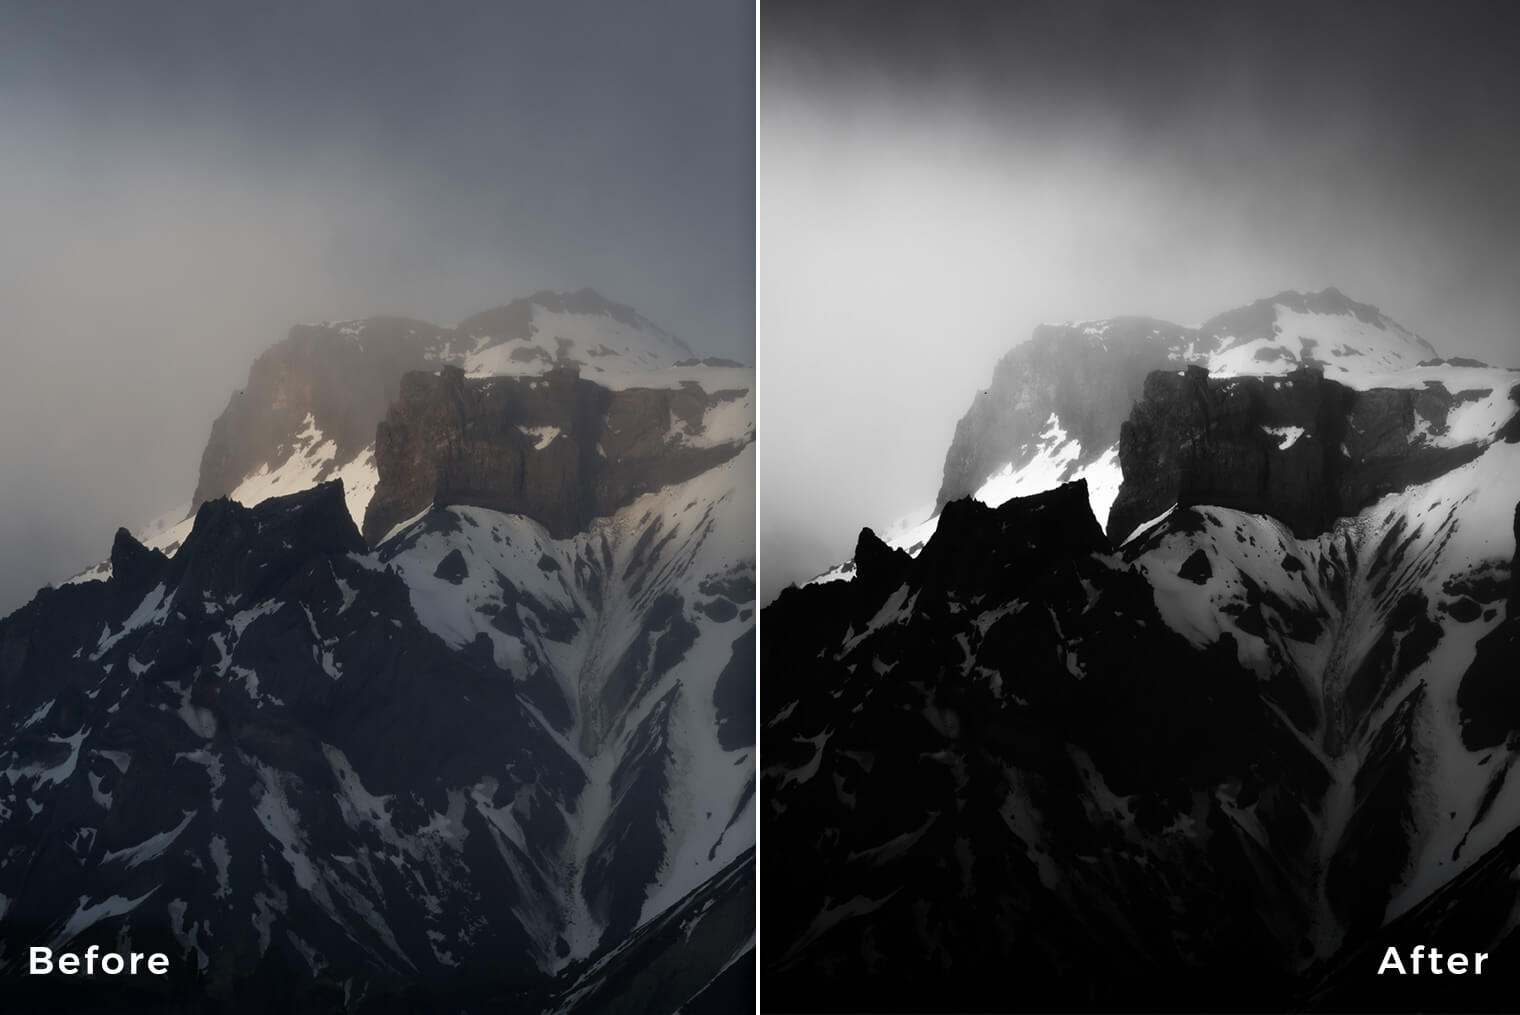 Lightroom Presets for Black & White Mountain Photography